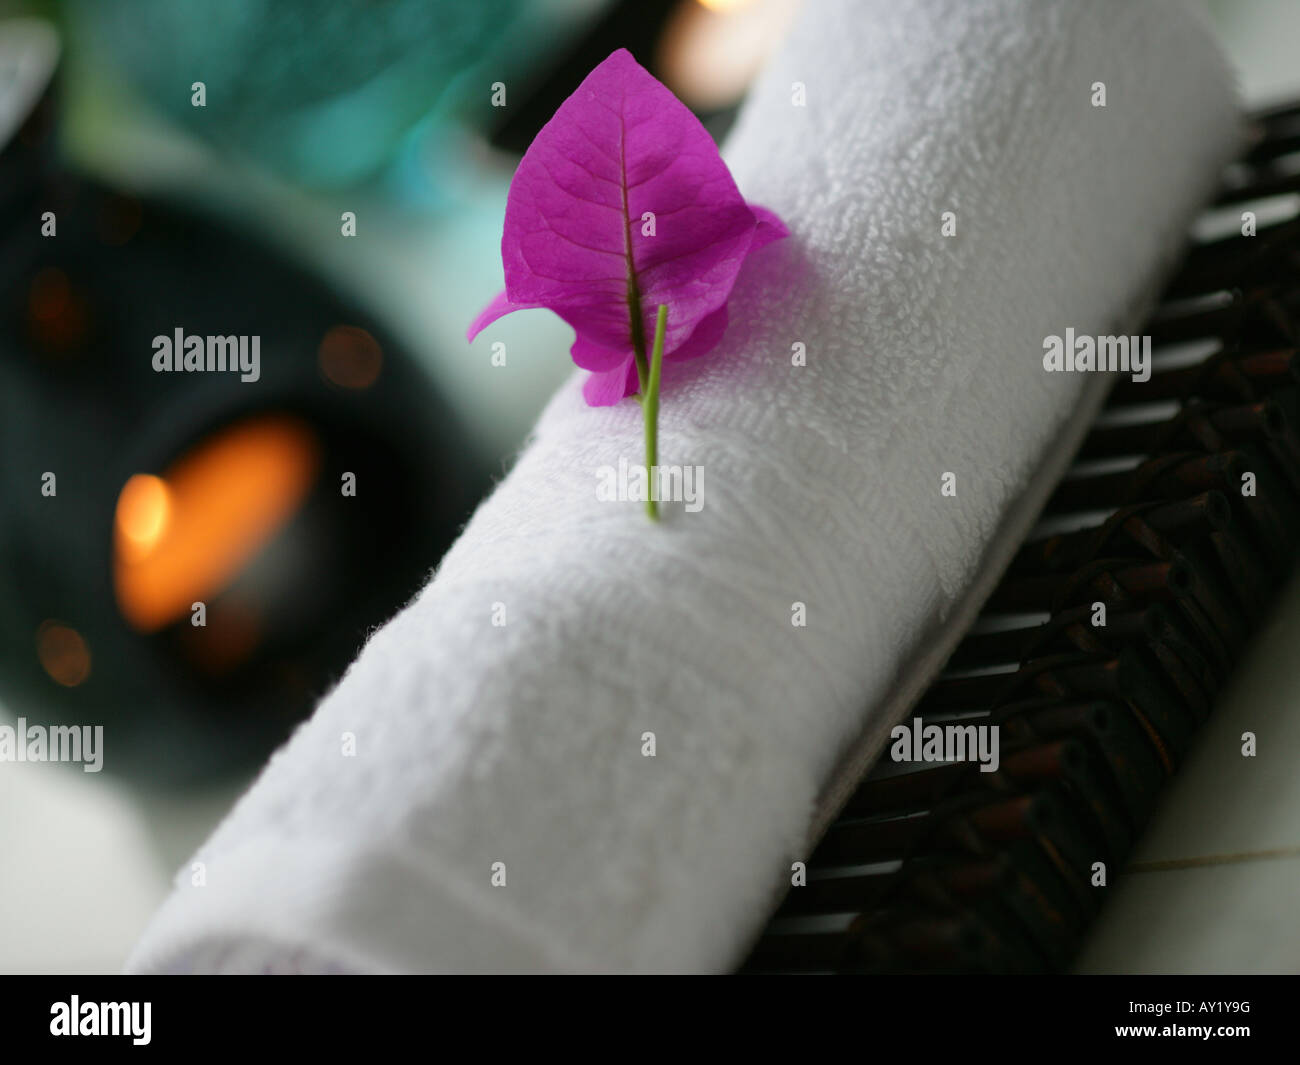 Close-up of a flower (Bougainvillea) on a rolled up towel - Stock Image